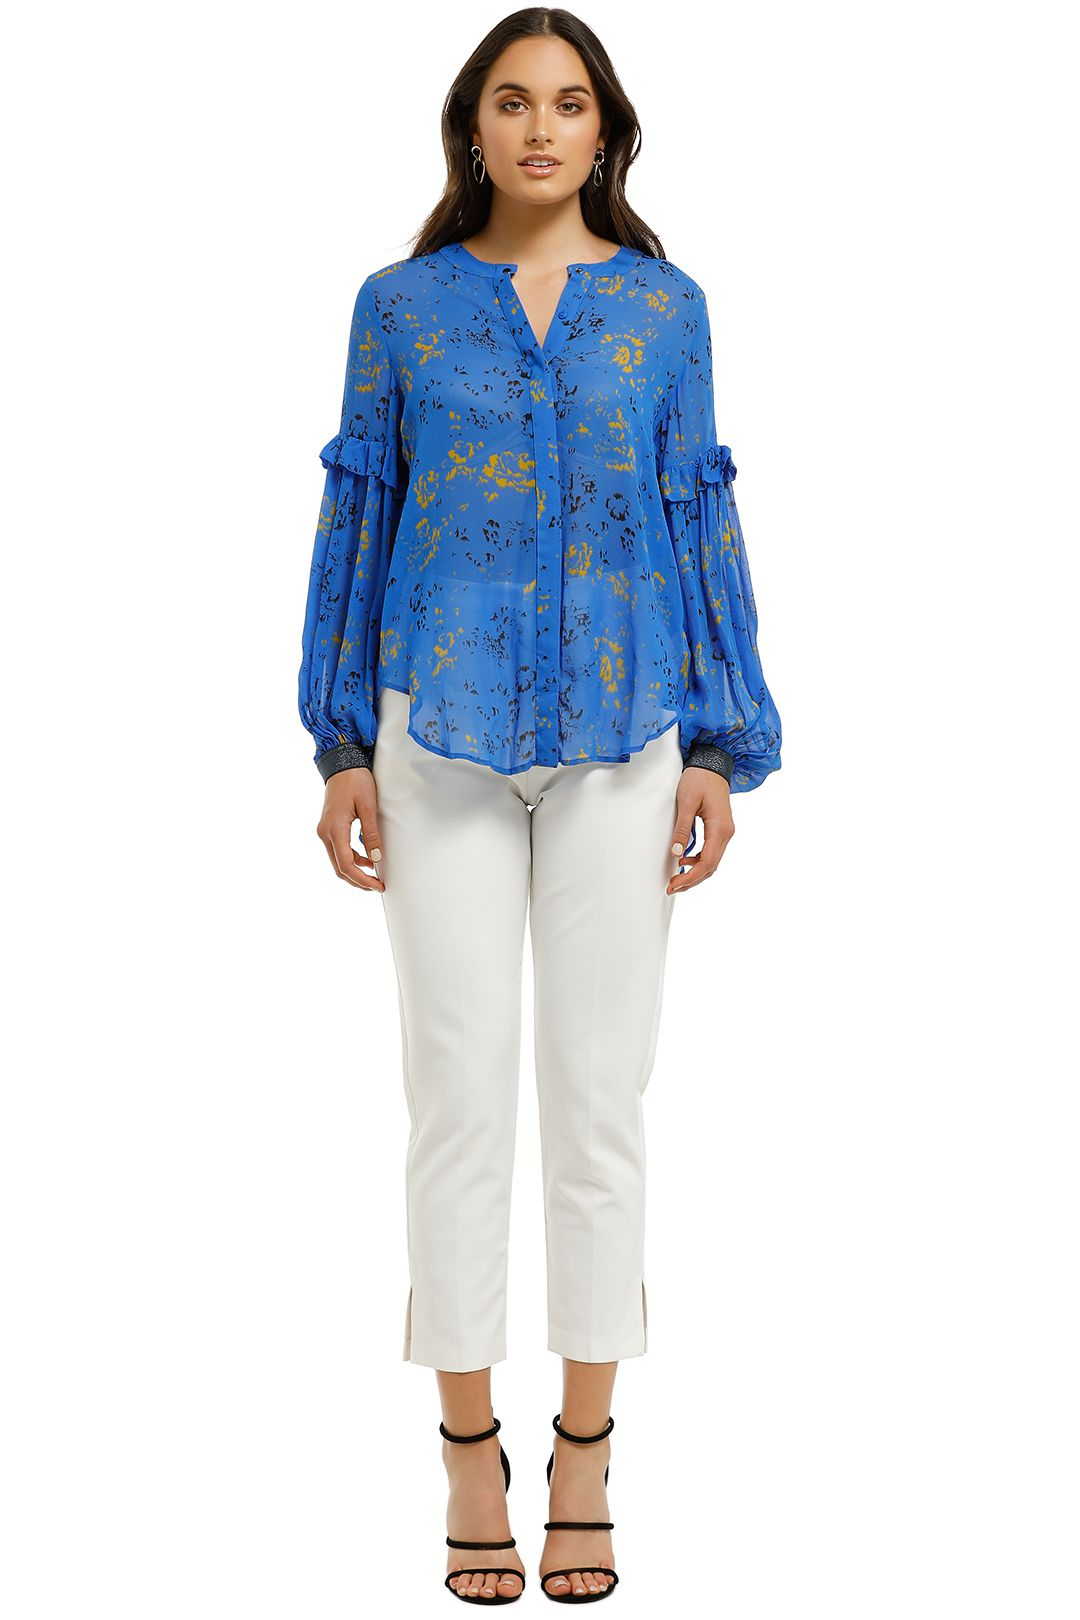 Ginger-and-Smart-Aquiver-Blouse-Aquiver-Front